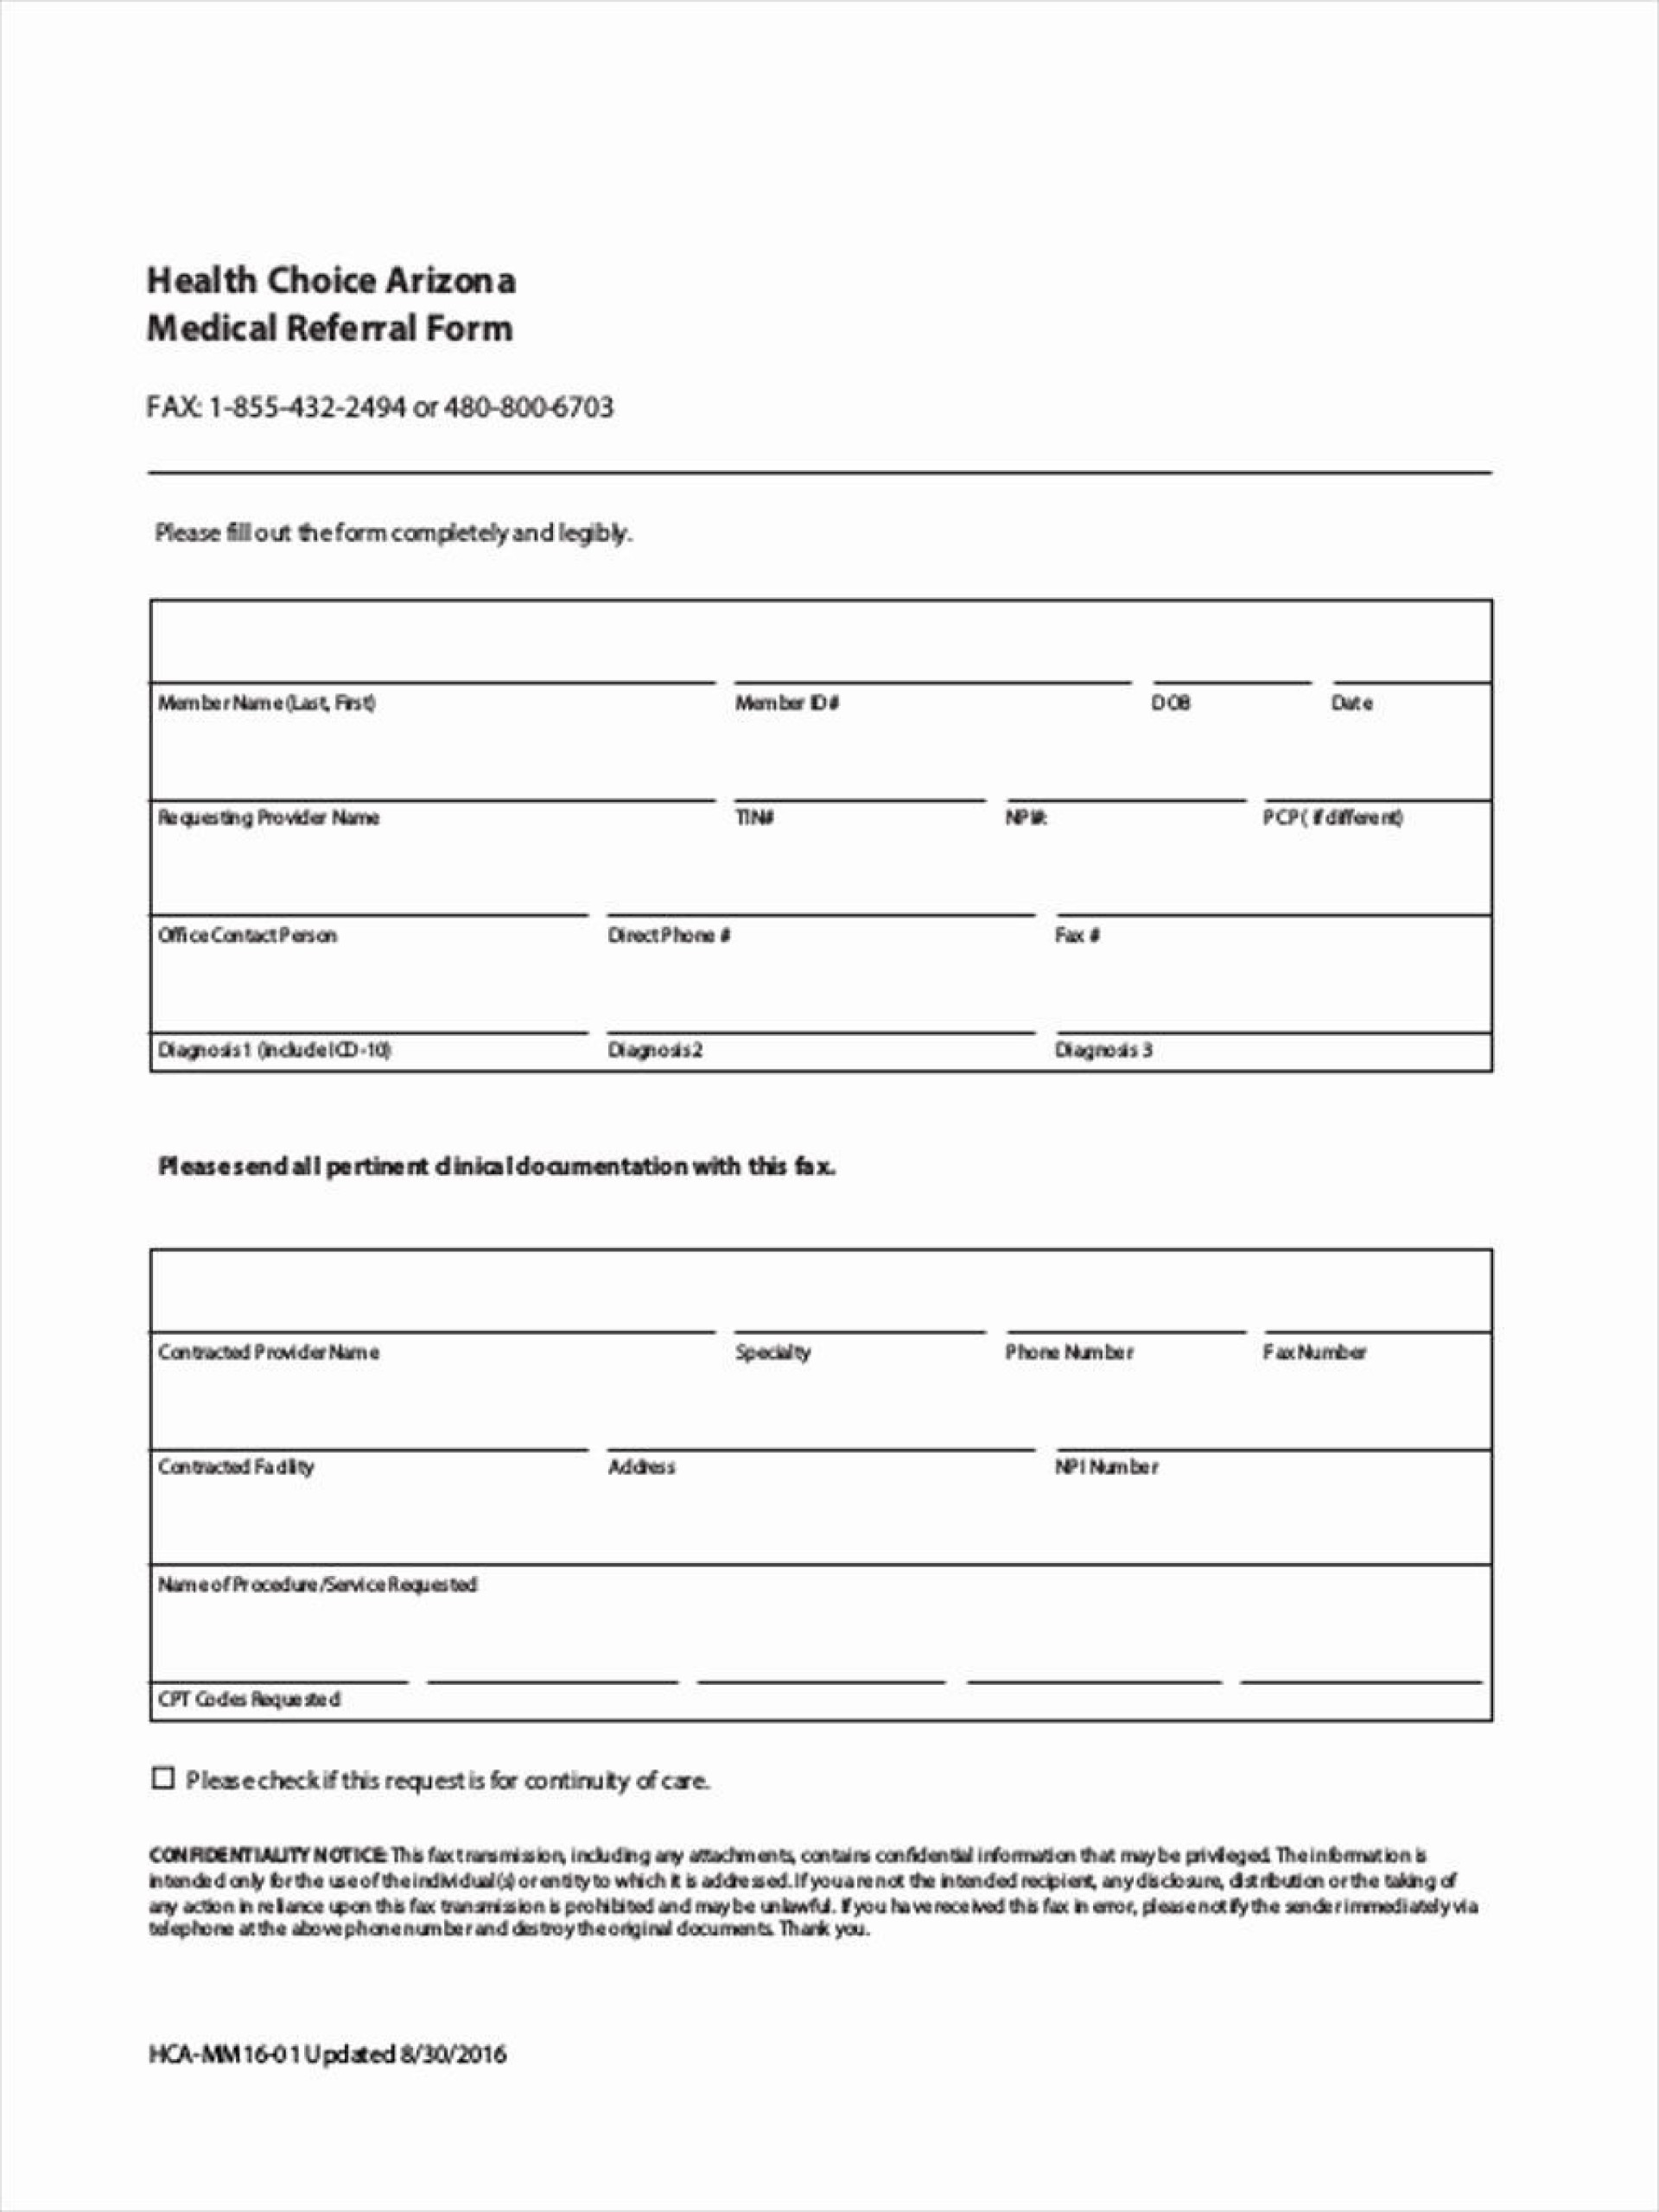 001 Singular Medical Referral Form Template High Resolution  Dental Patient Doctor Free Physician1920